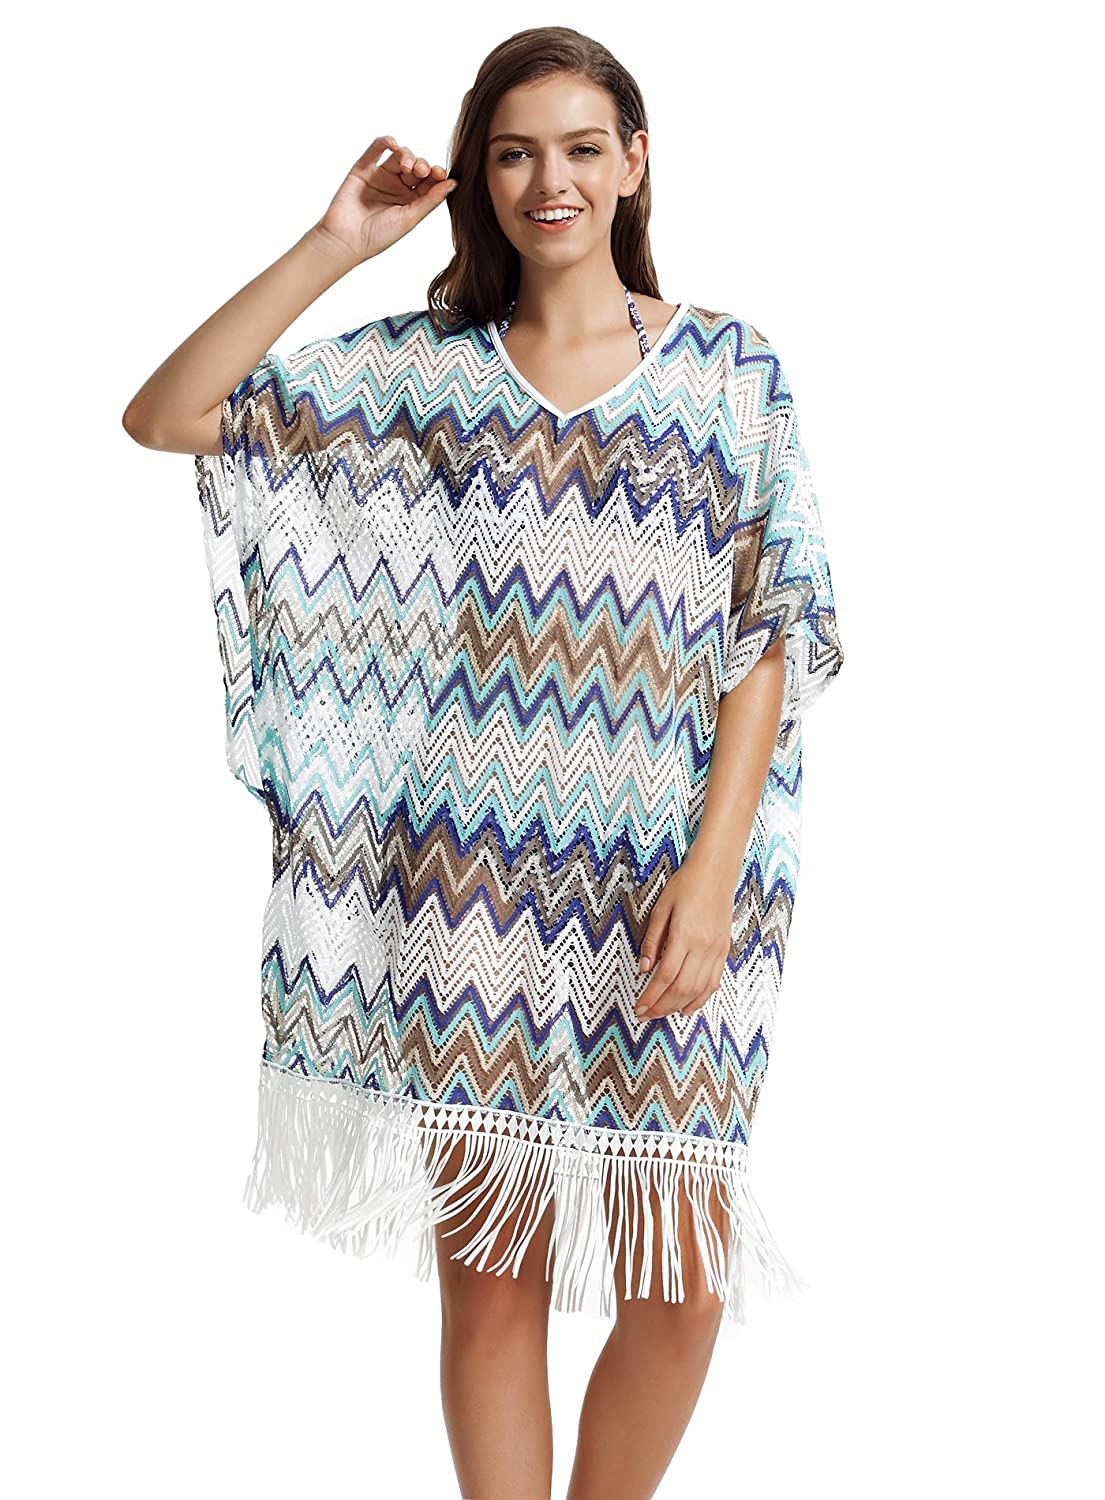 bluee zeraca Women's V Neckline Lace Fringe Bikini Swimsuits Cover UPS